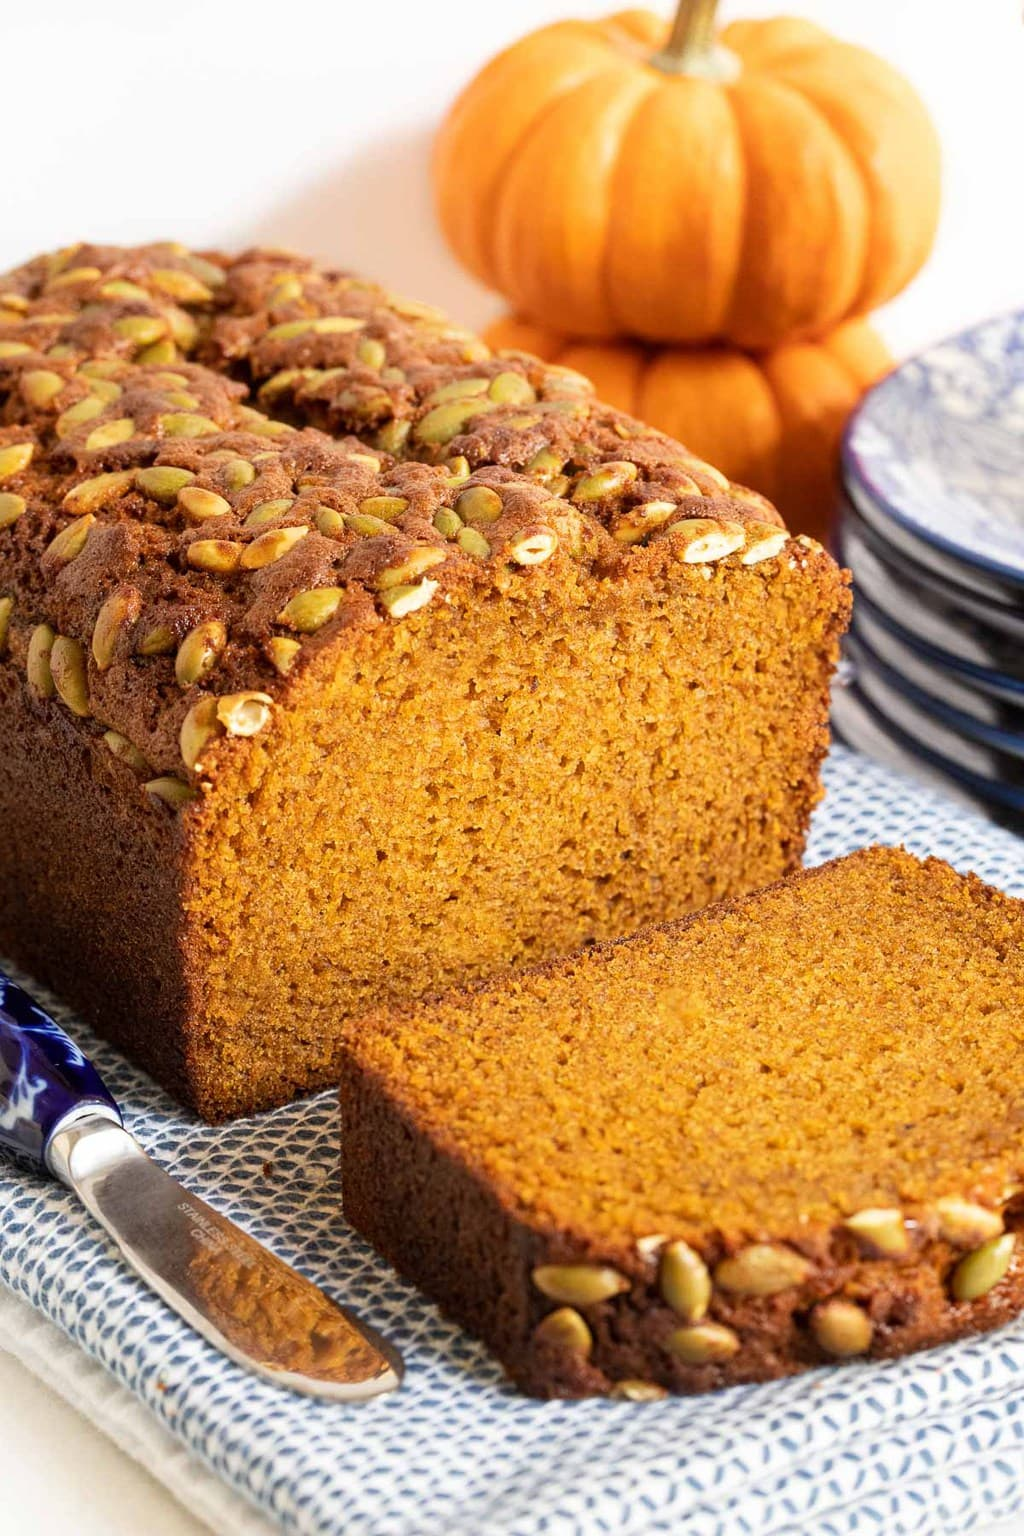 Closeup vertical photo of a loaf of Better Than Starbucks Pumpkin Bread (One-Bowl, No-Mixer!) with a slice cut on a blue and white patterned cloth.